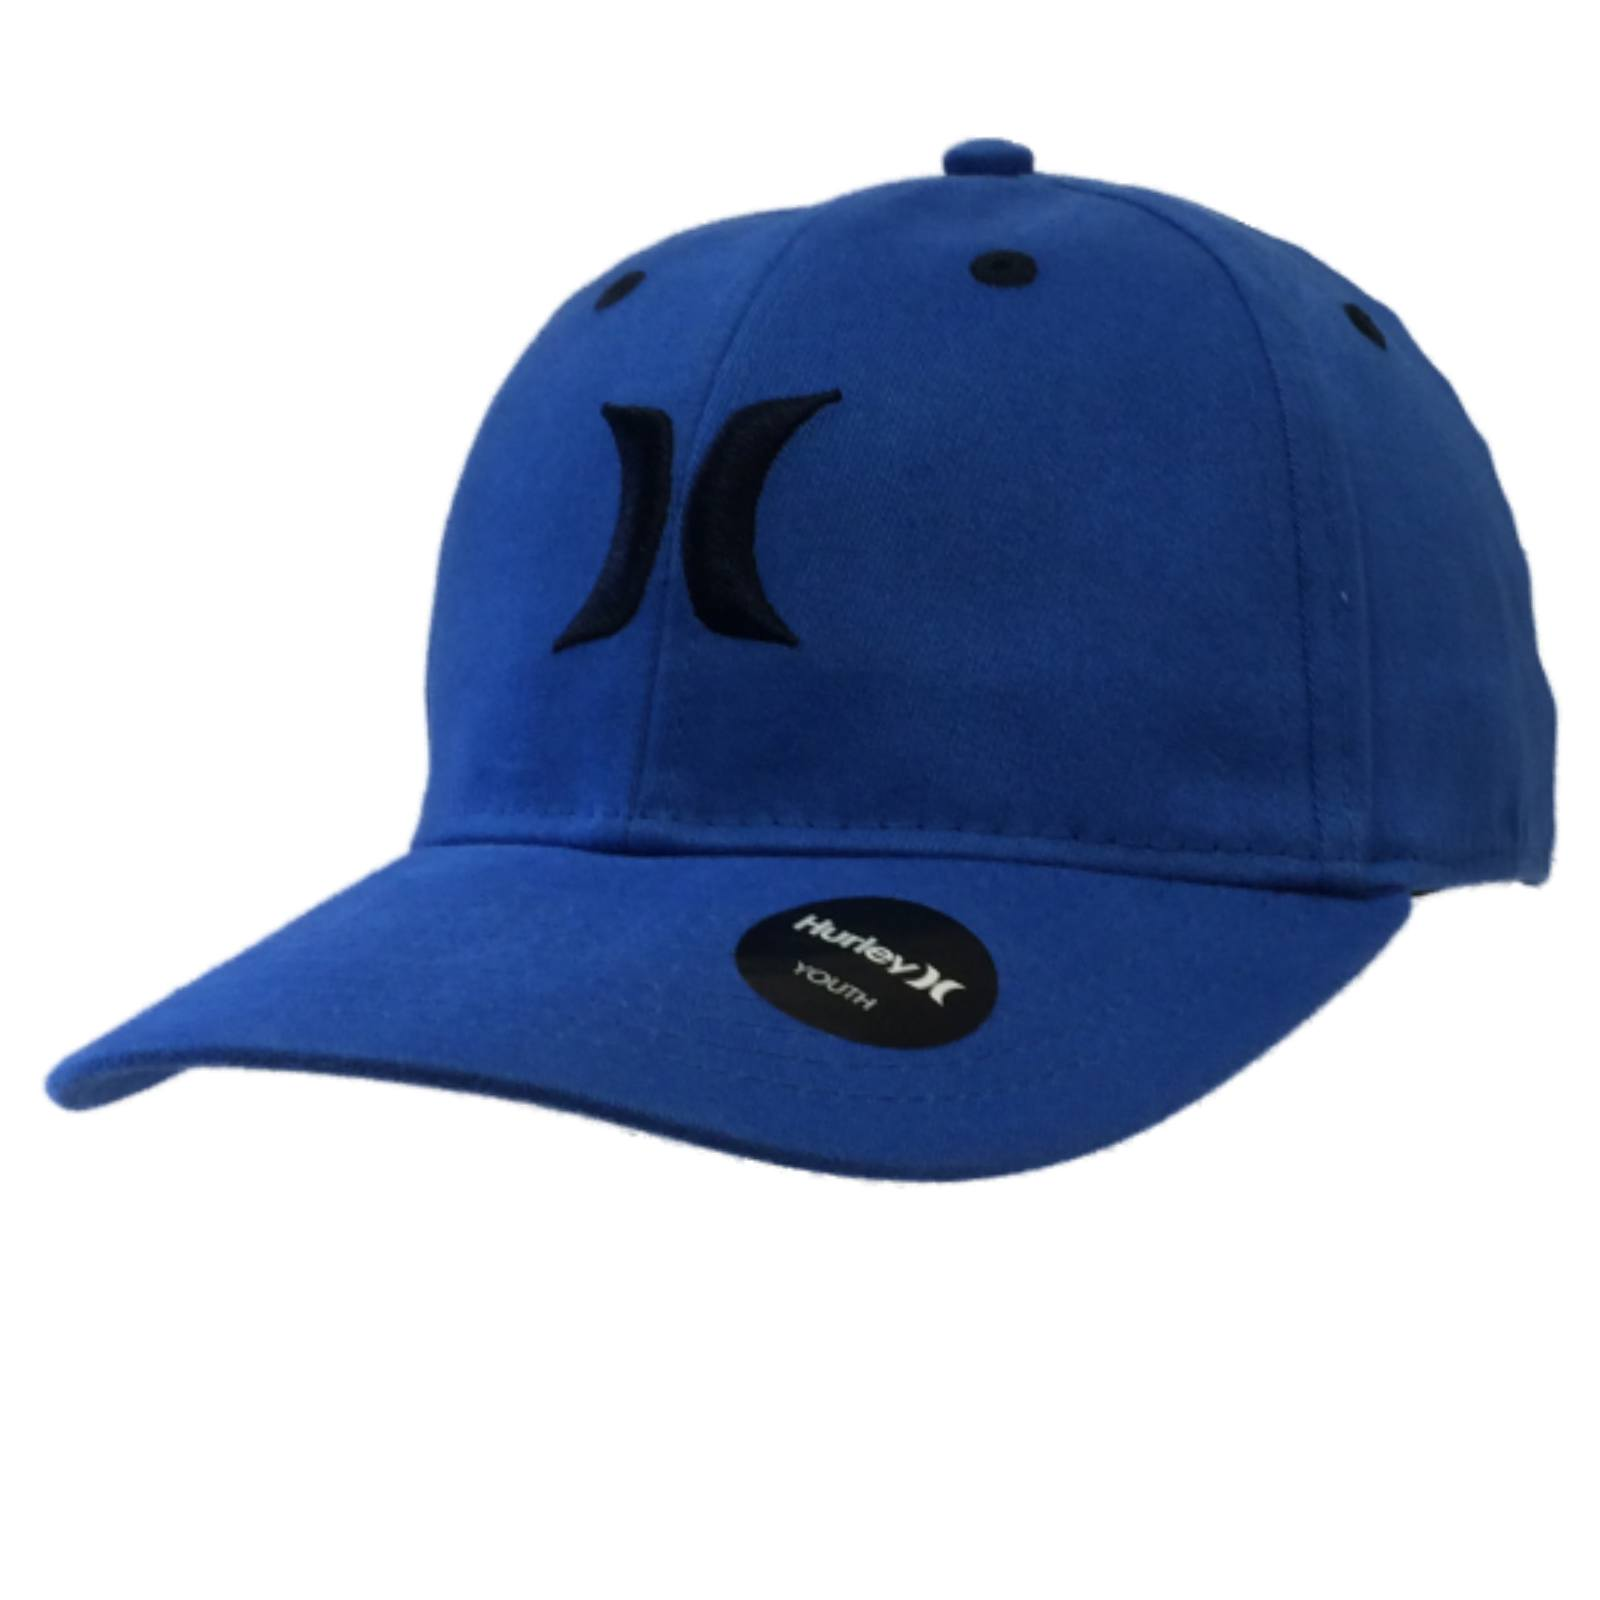 a2d76911 ... new zealand hurley youth boys royal blue black flexfit structured one  size hat cap bbbeb e8a24